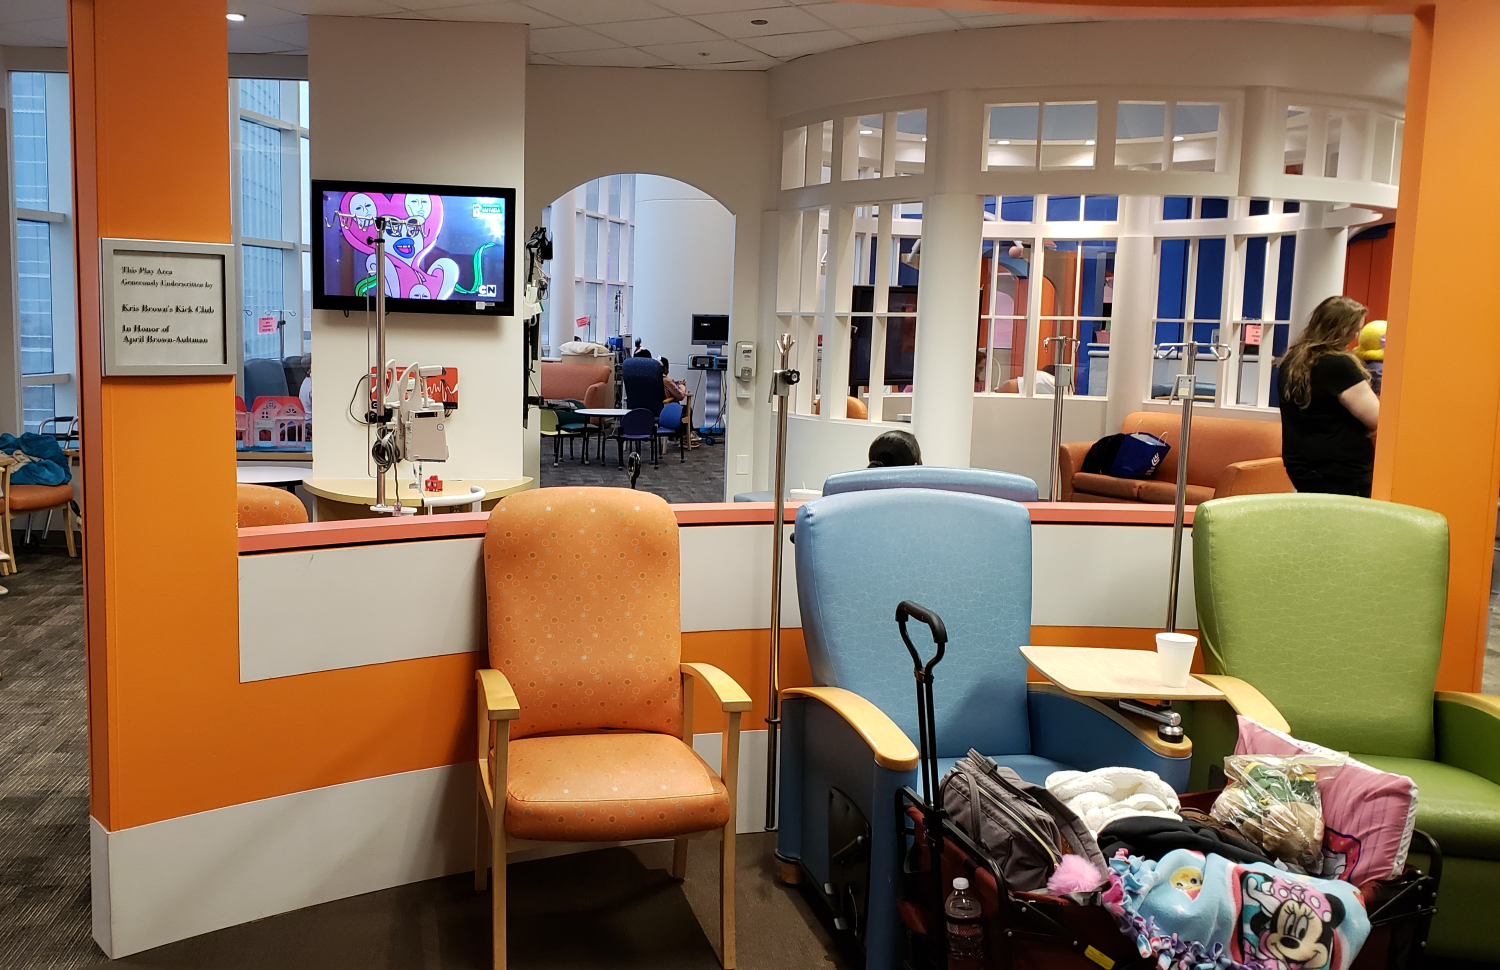 Children receive cancer treatment in colorful care spaces at Texas Children's Hospital.